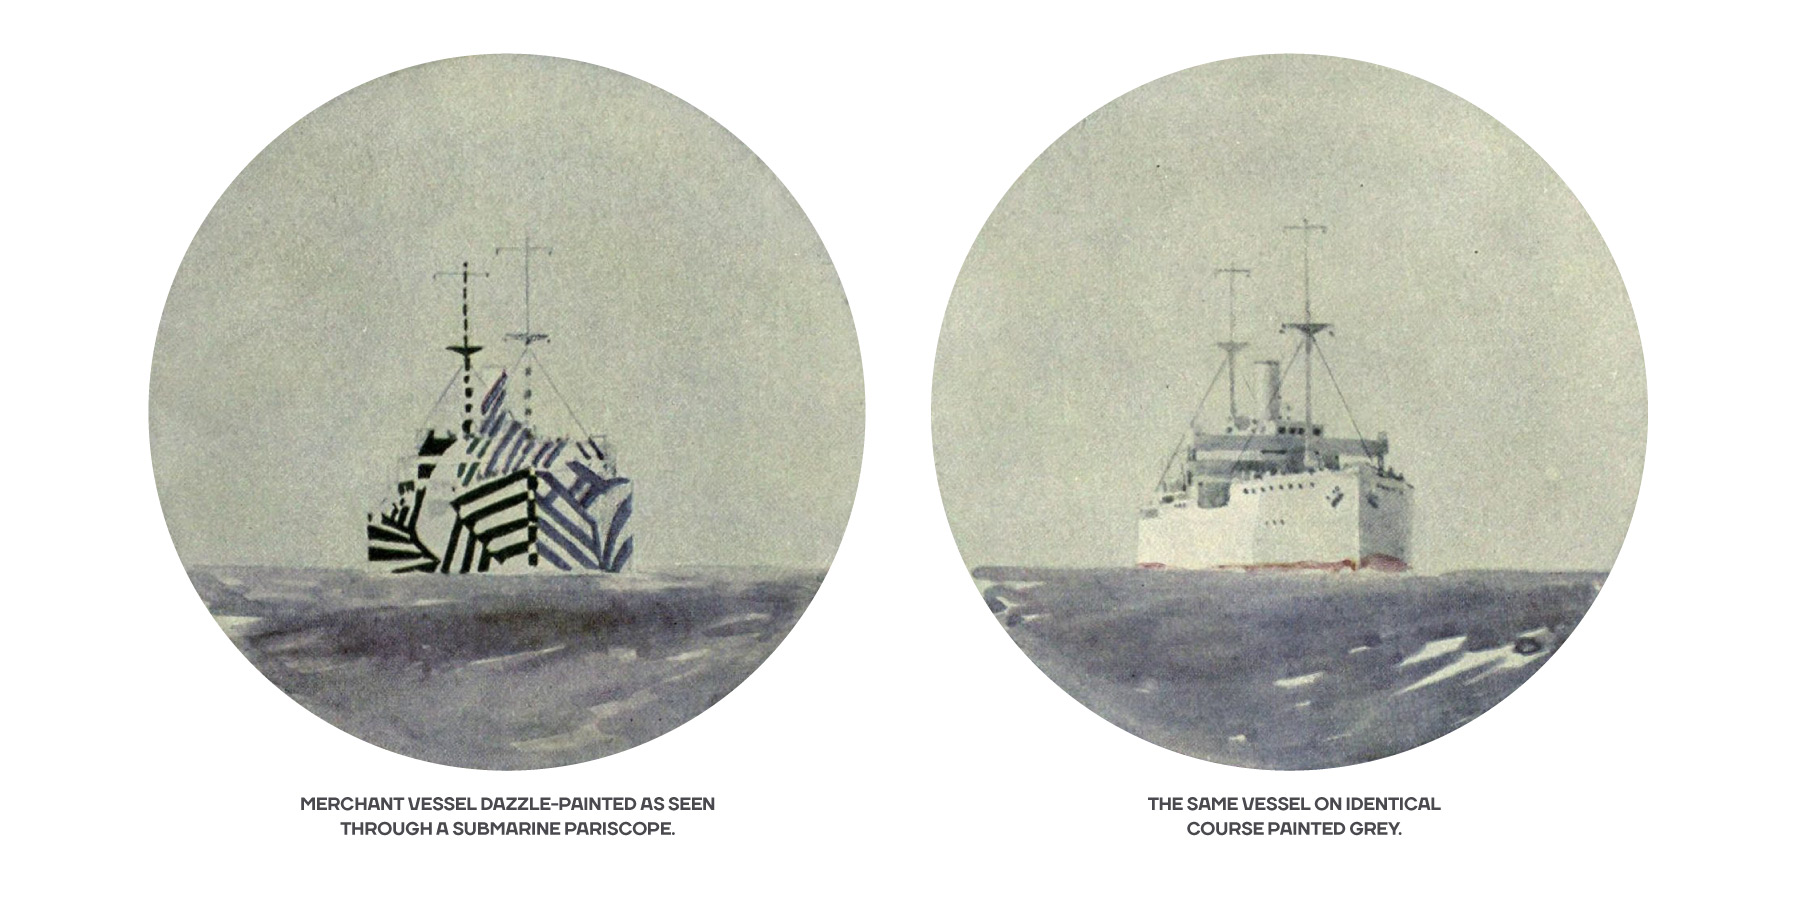 Fig. 8 - Dazzle-painted ships seen through pariscope